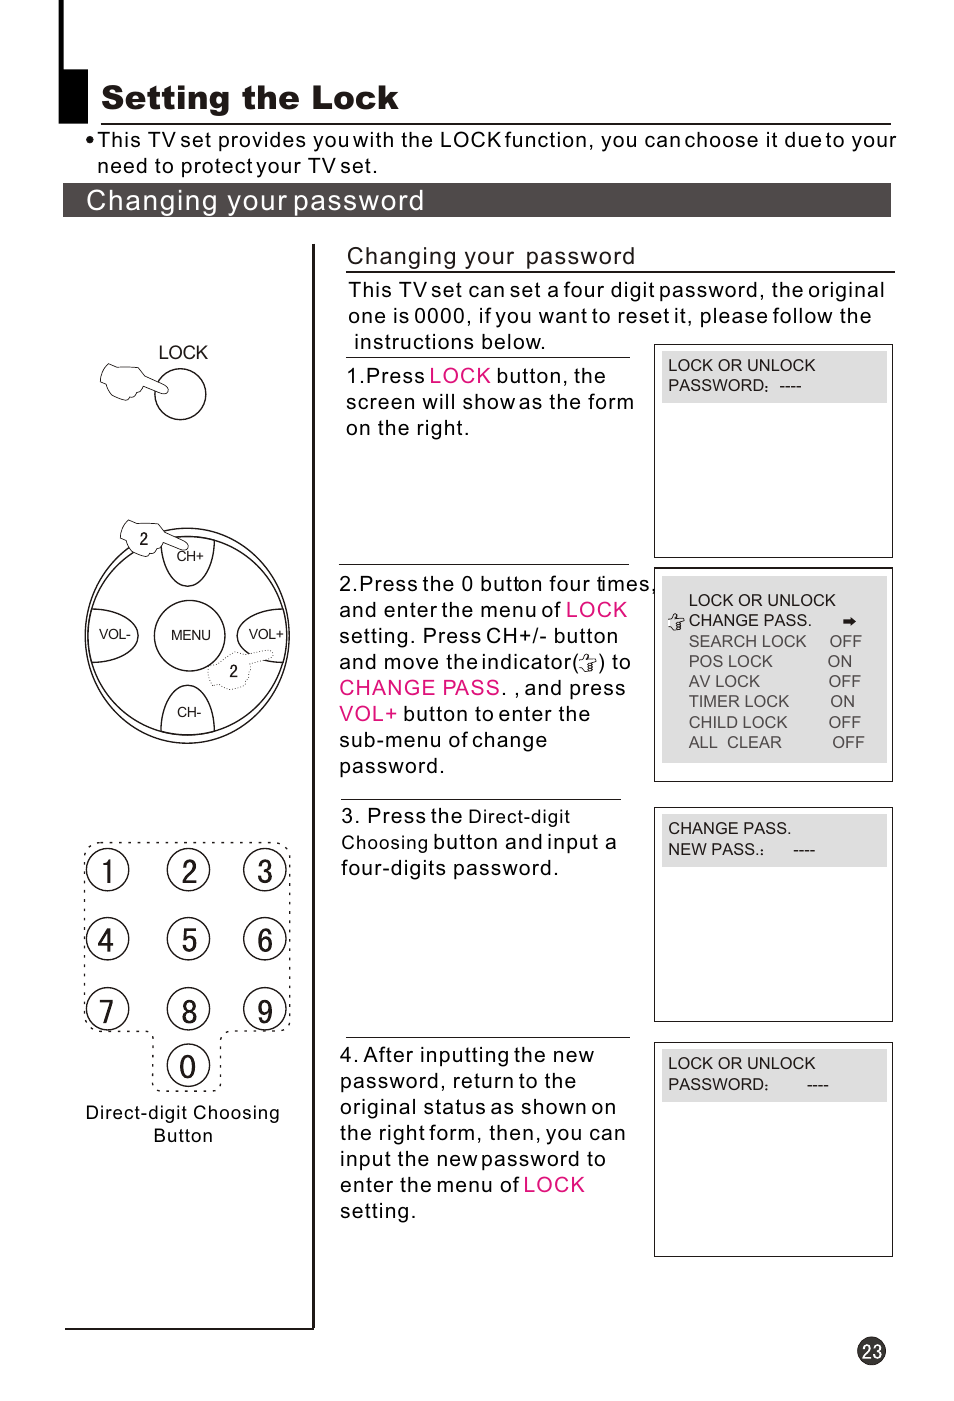 Т³гж 25, Setting the lock, Changing your password | haier HT